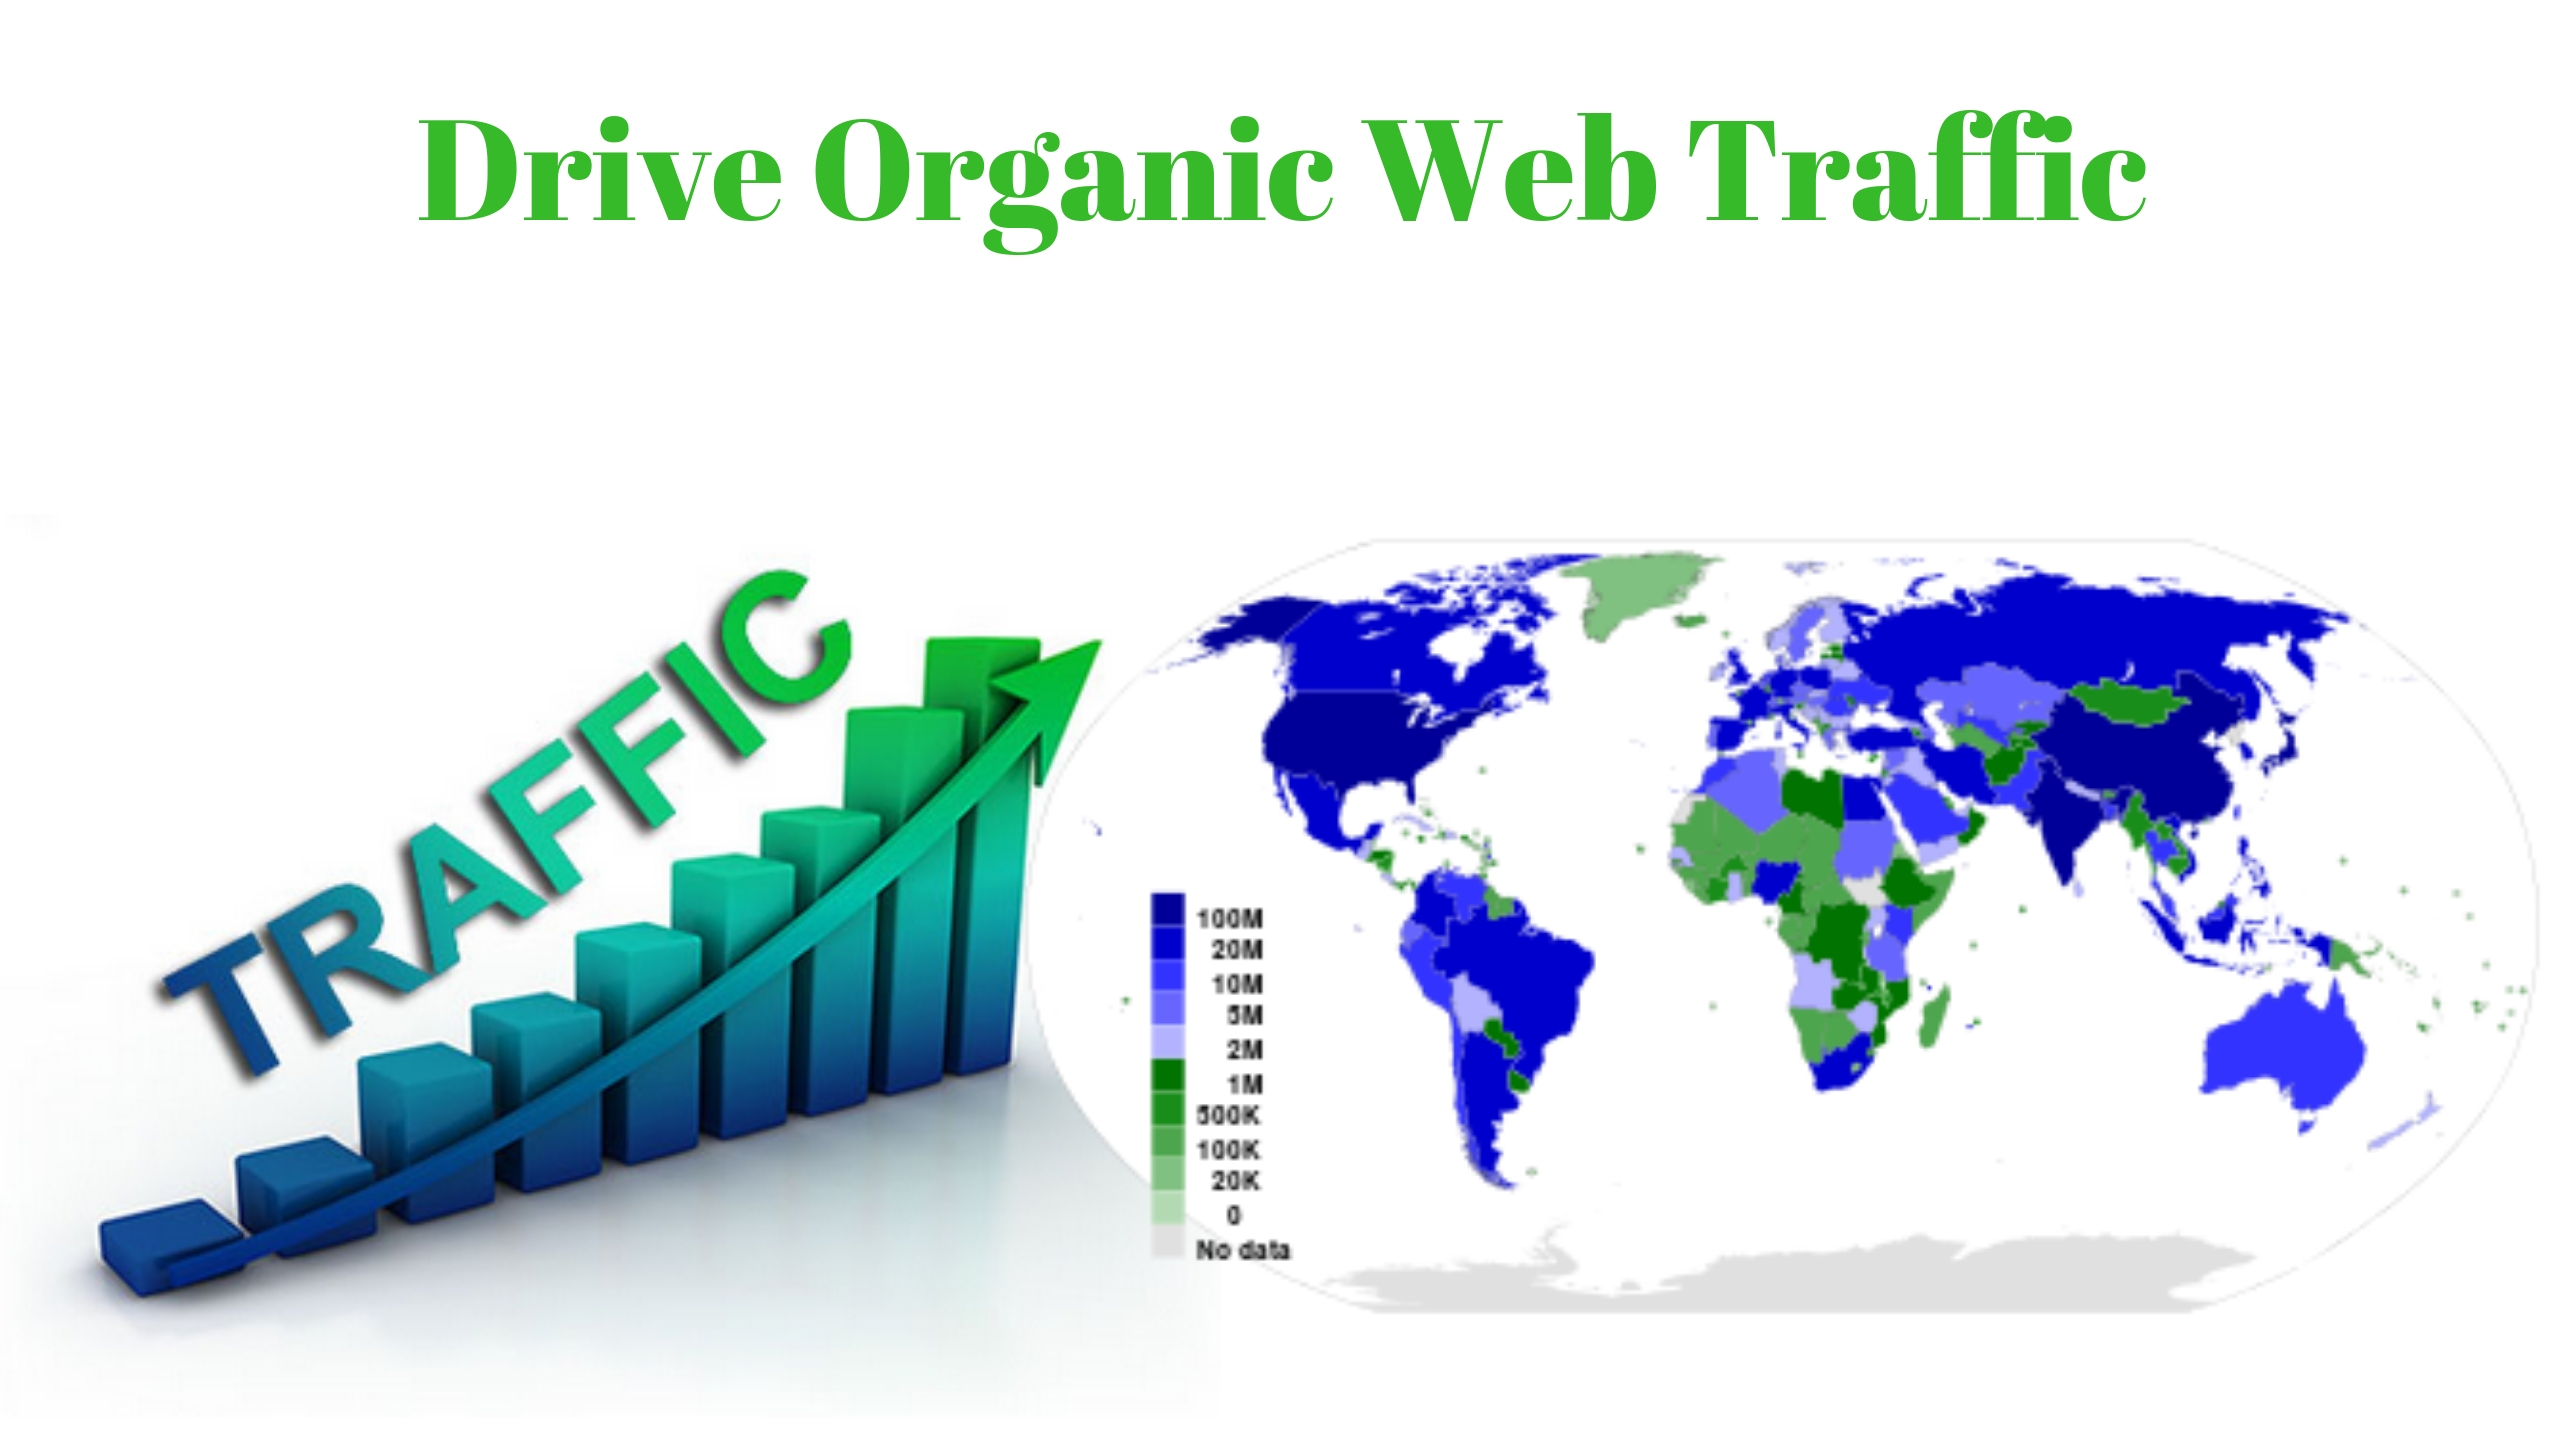 Drive Organic Web Traffic To Your Website